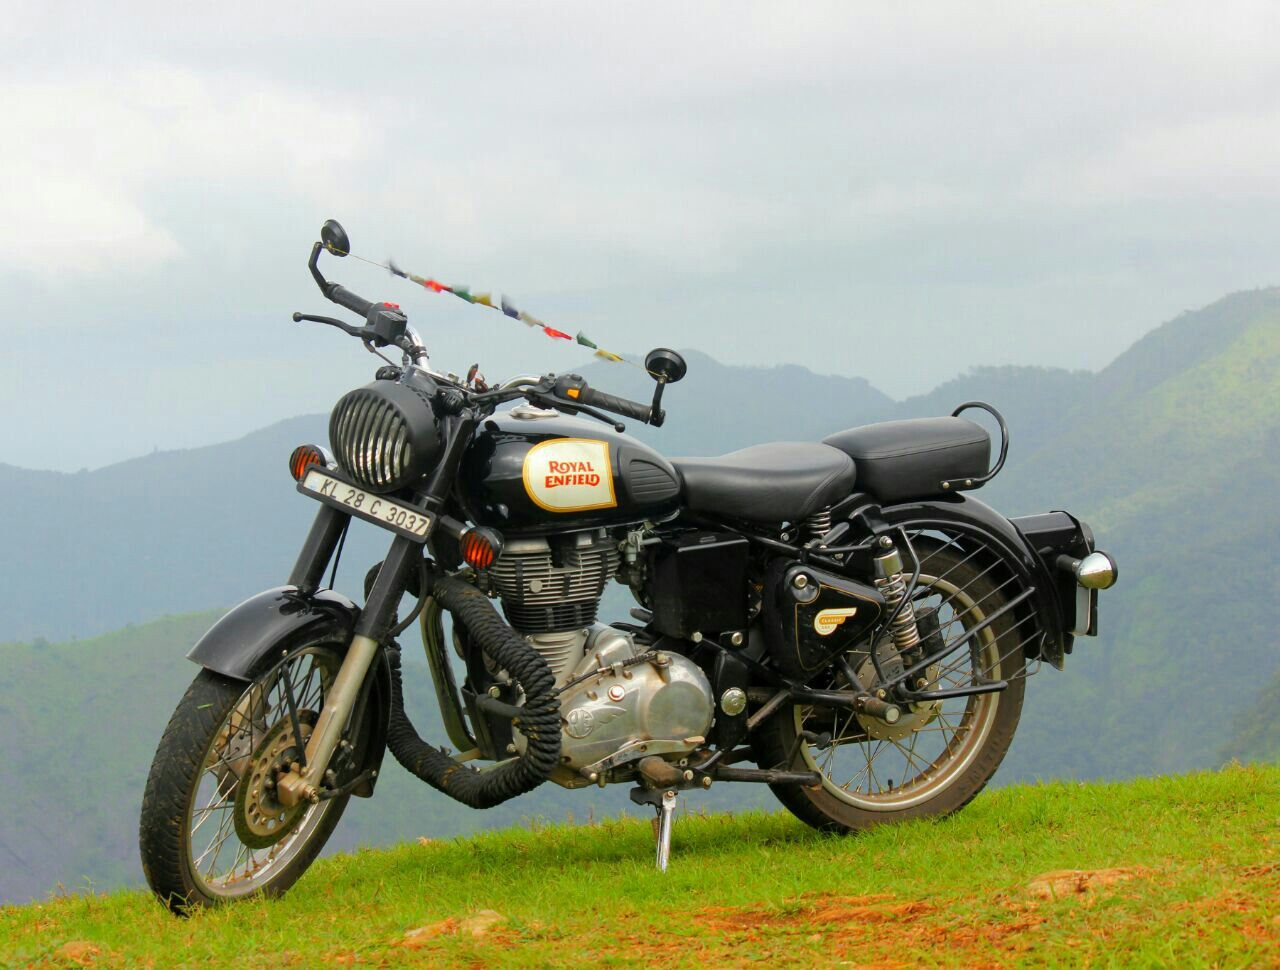 Royal enfield made like a gun goes like a bullet royal - Royal enfield classic 350 wallpaper ...